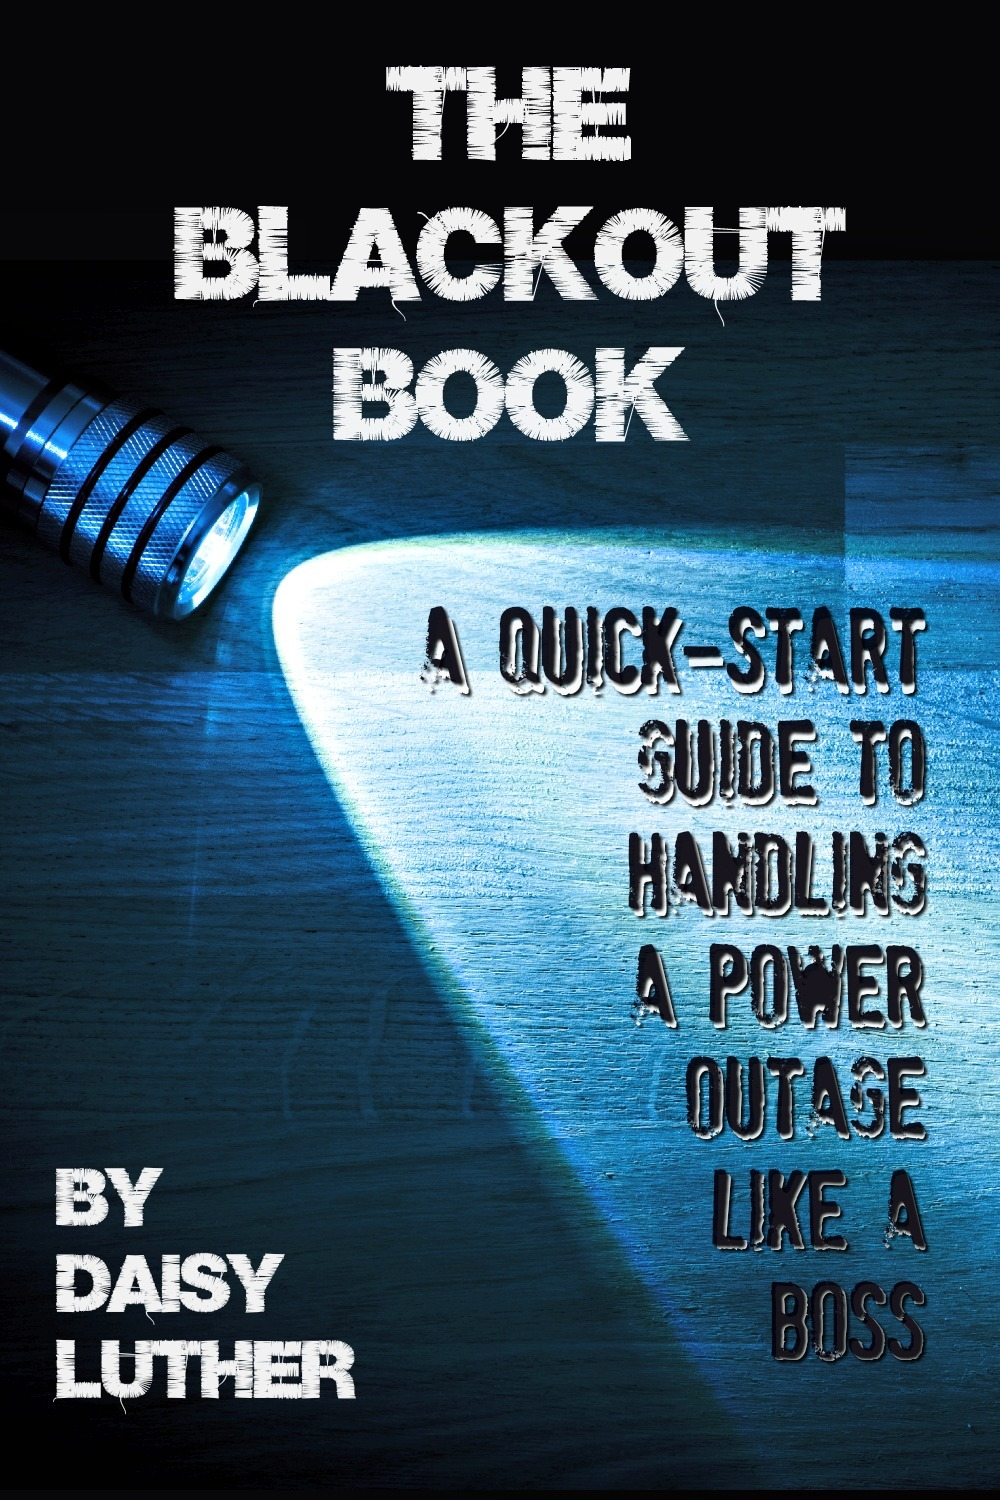 A Quick-Start Guide to Handling a Power Outage Like a Boss